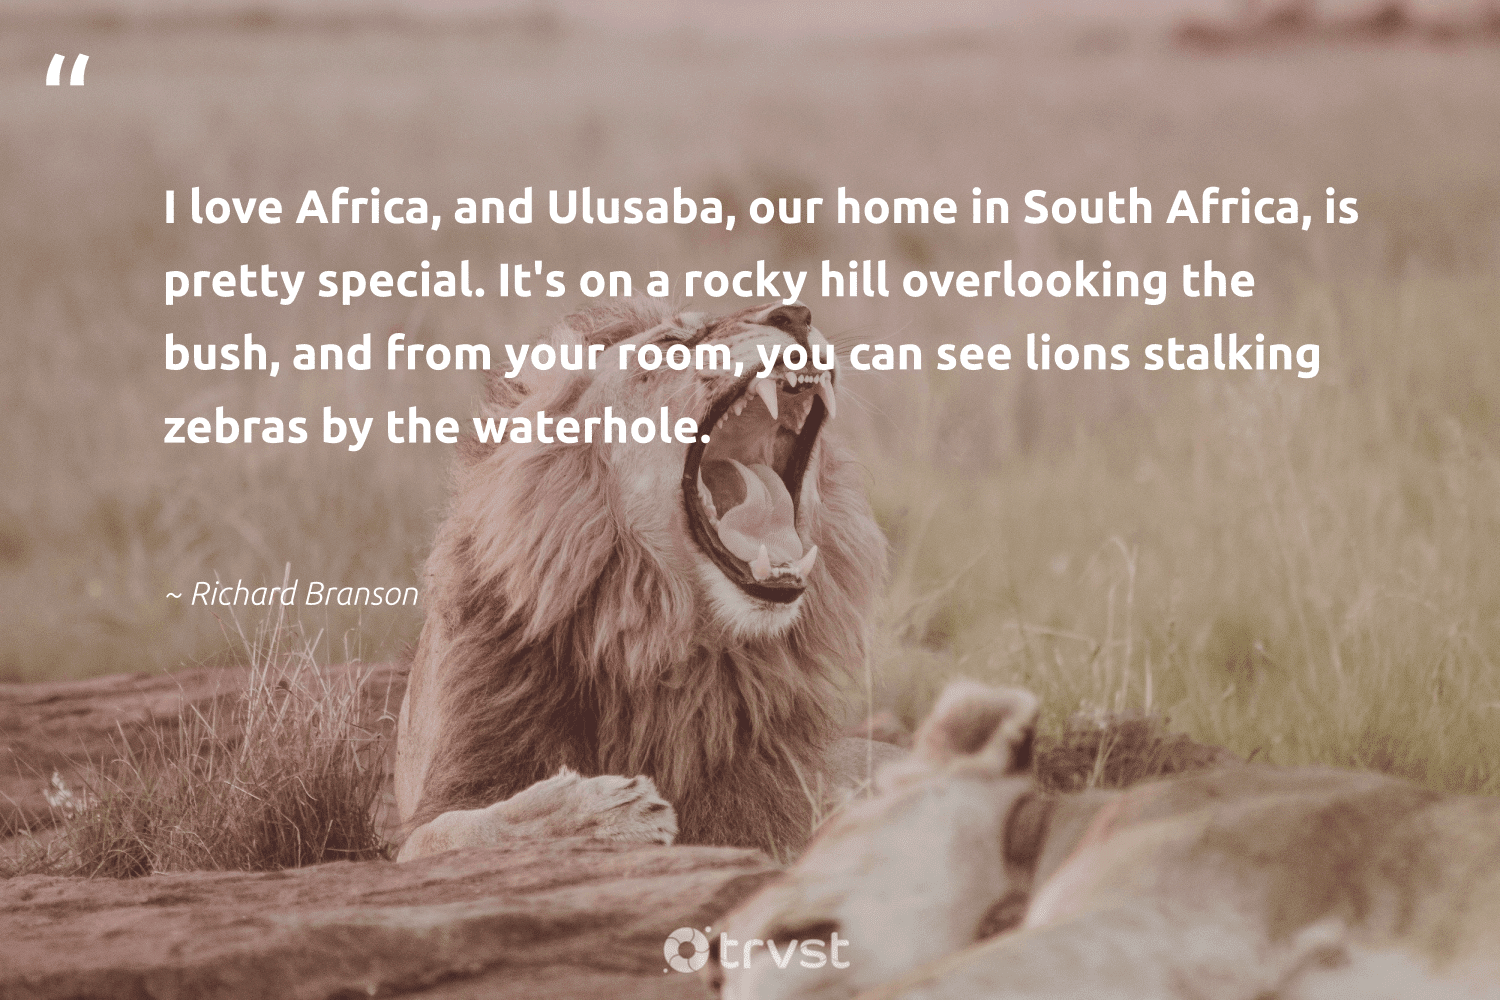 """""""I love Africa, and Ulusaba, our home in South Africa, is pretty special. It's on a rocky hill overlooking the bush, and from your room, you can see lions stalking zebras by the waterhole.""""  - Richard Branson #trvst #quotes #southafrica #africa #love #lions #protectnature #dotherightthing #perfectnature #ecoconscious #conservation #thinkgreen"""